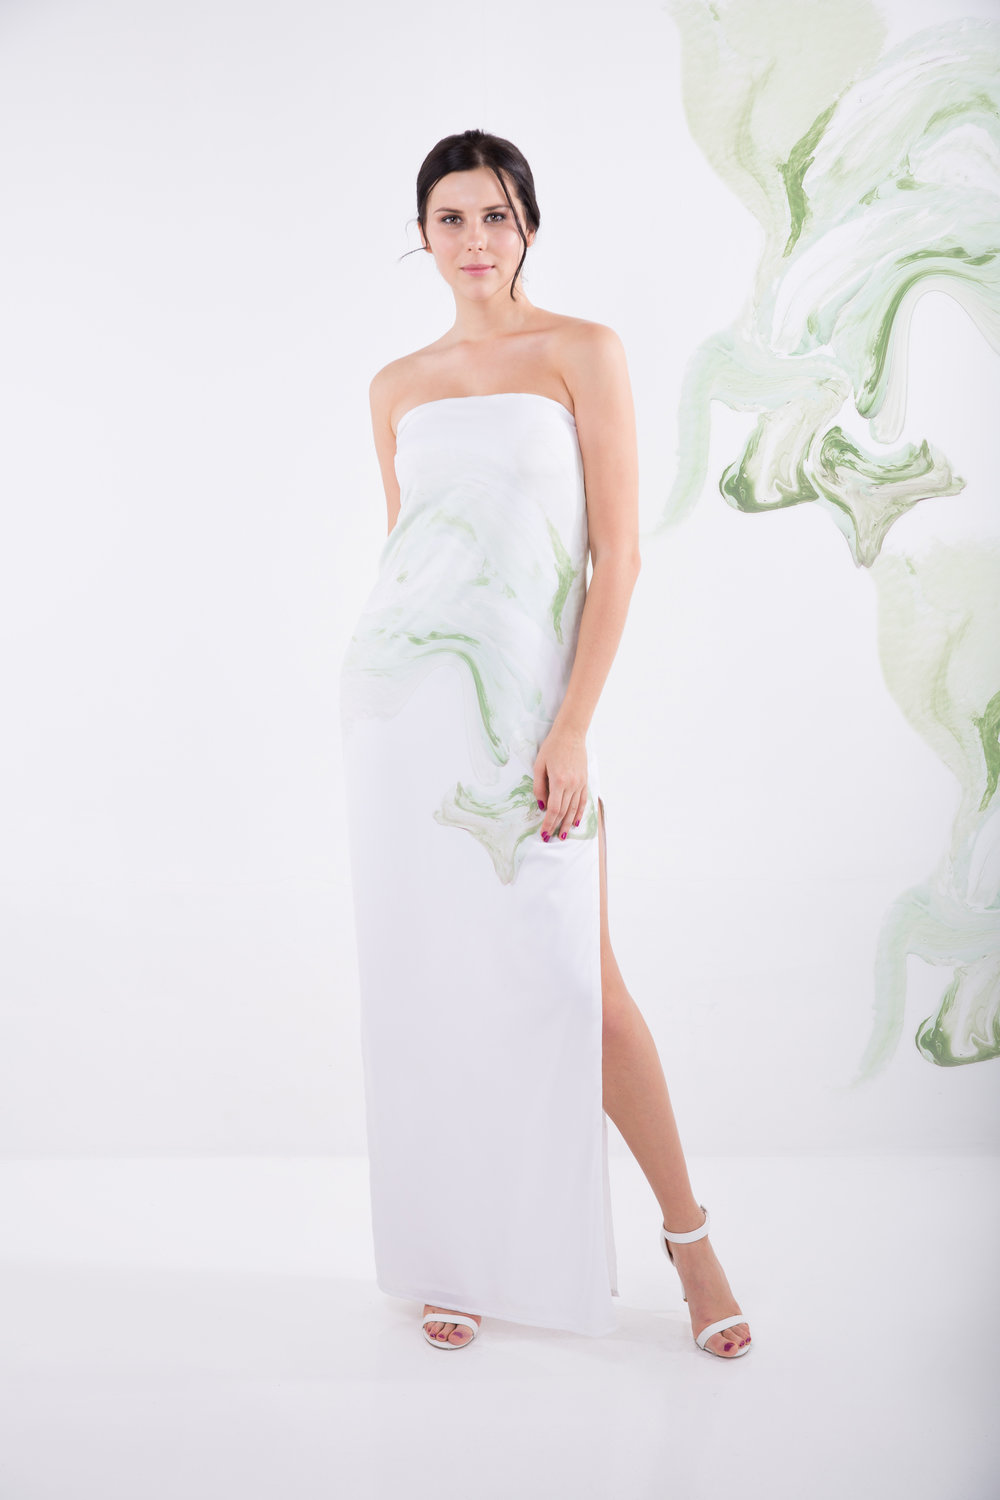 The Jade dress by ASHLEIGH KWONG